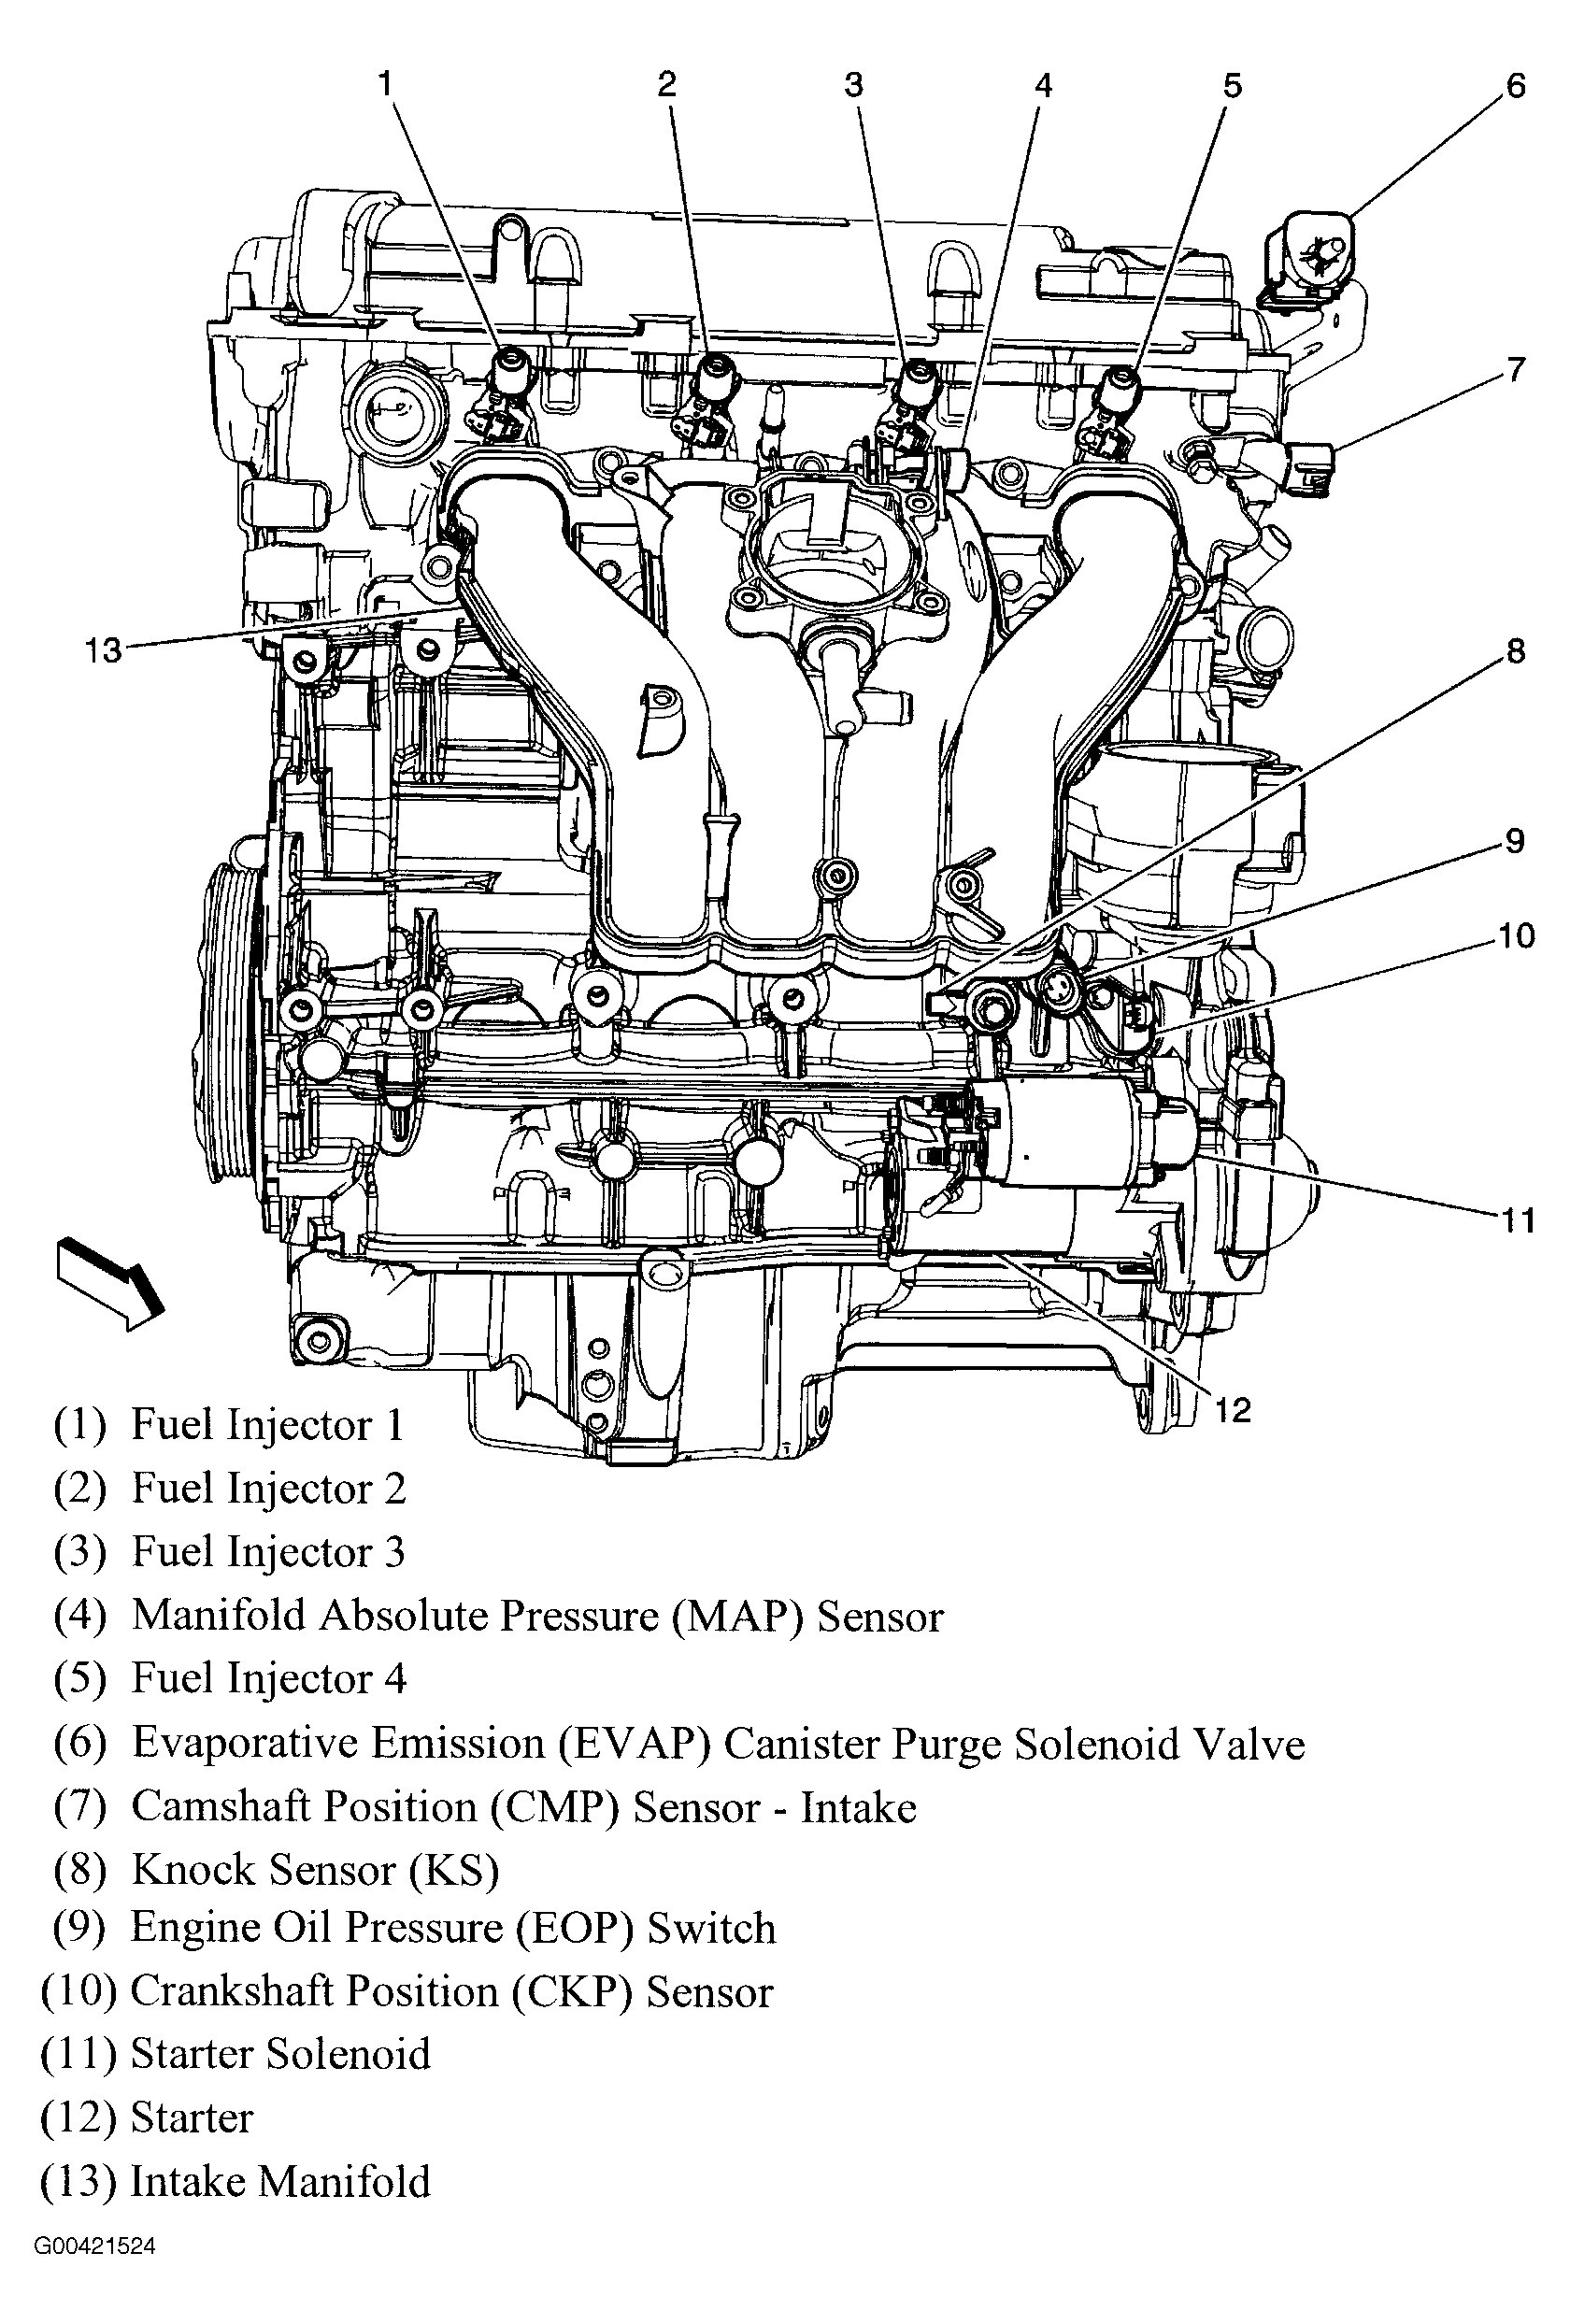 2003 saturn vue engine diagram rosemount 4 wire rtd wiring 1 9 19 stromoeko de schematics master blogs u2022 rh vpn939732919 softether net 1994 sl2 l200